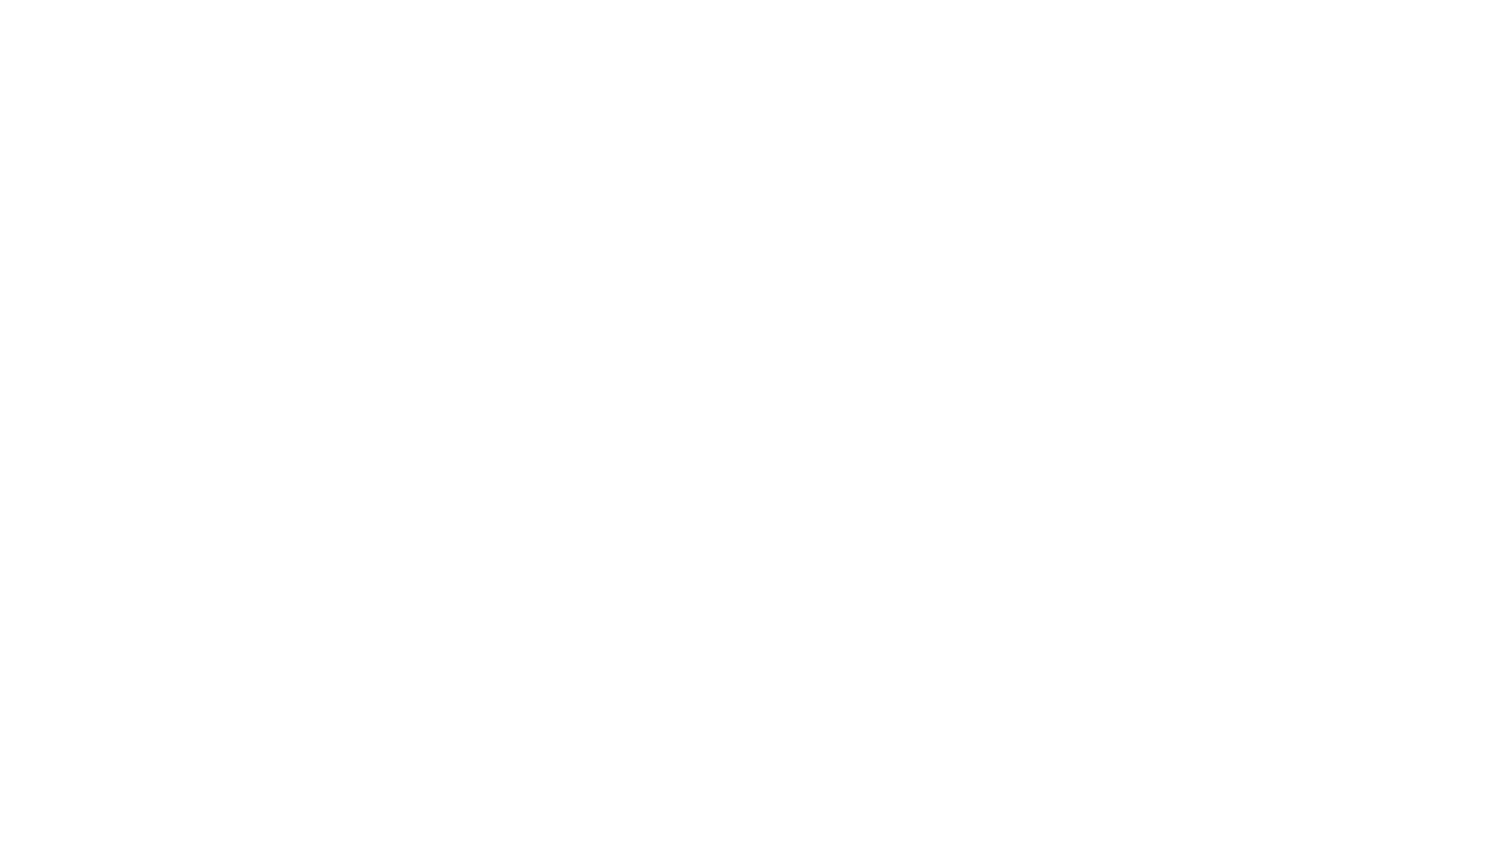 EVERS FORGEWORKS